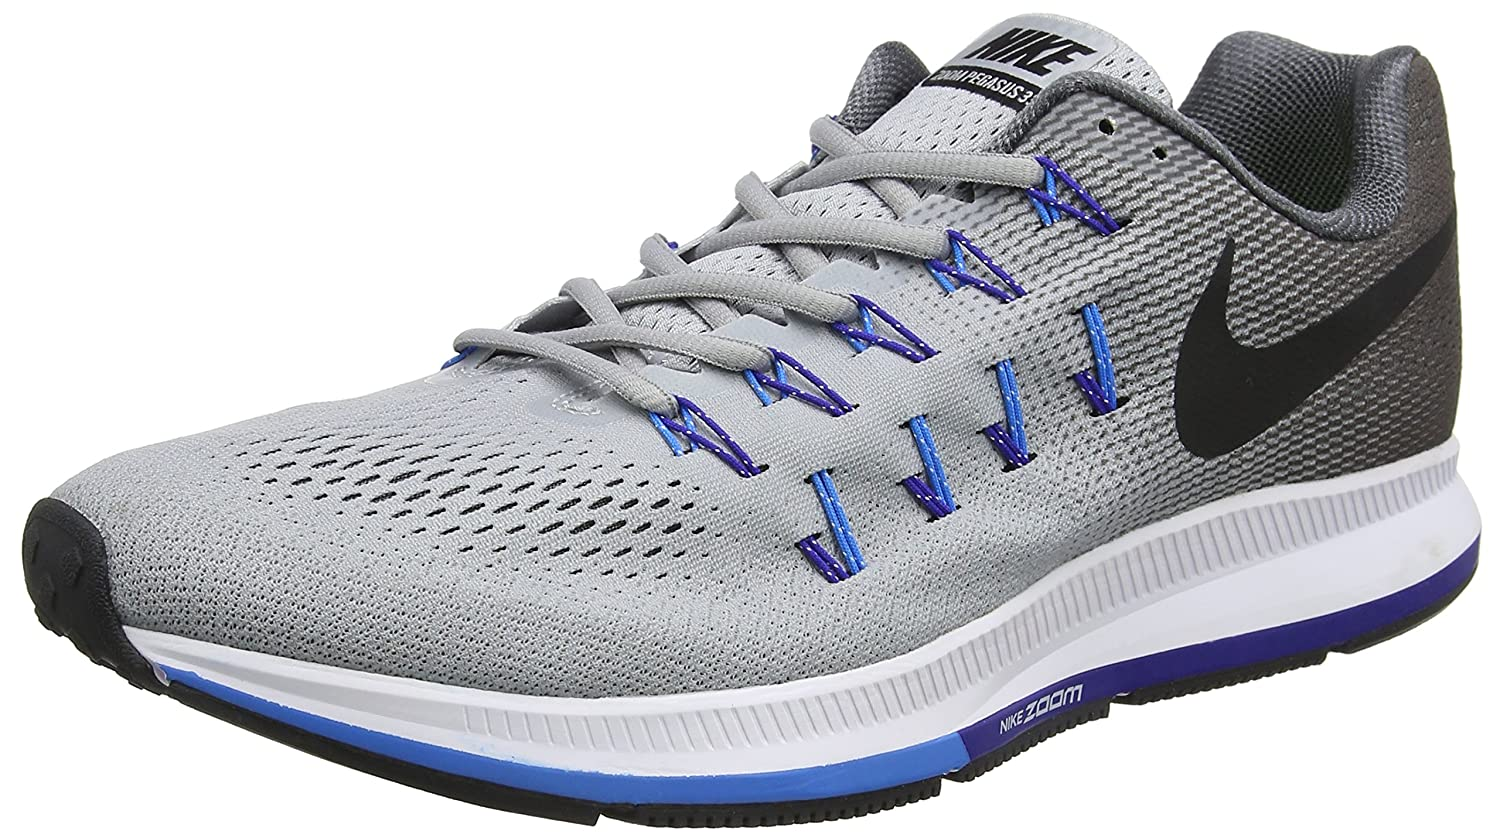 Nike Men's Air Zoom Pegasus 33 B0145U8ICM 7.5 D(M) US|Wolf Grey/Black/Dark Grey/Blue